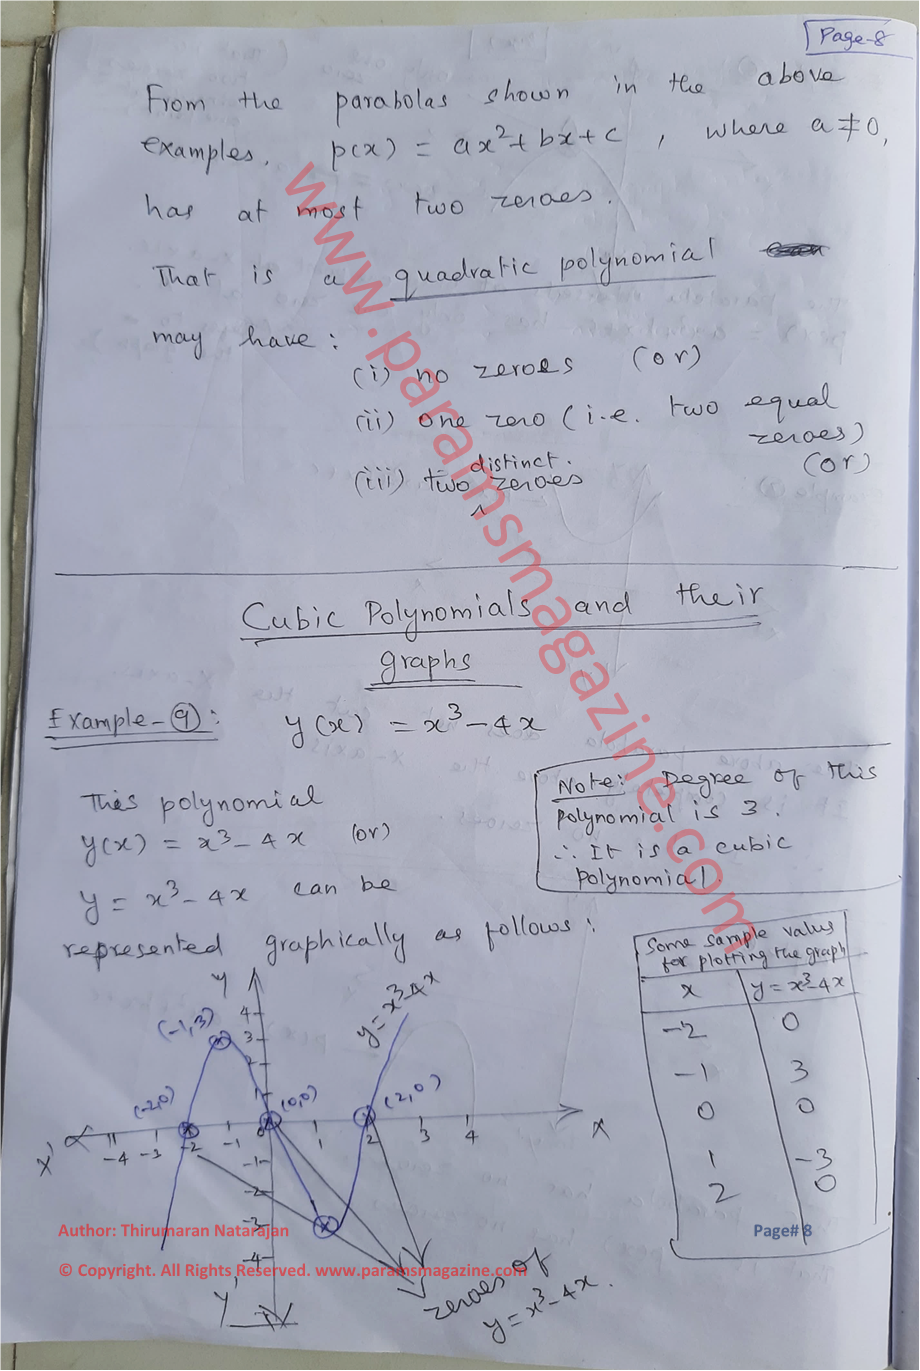 Class-10 - Polynomials - Notes - Page-8